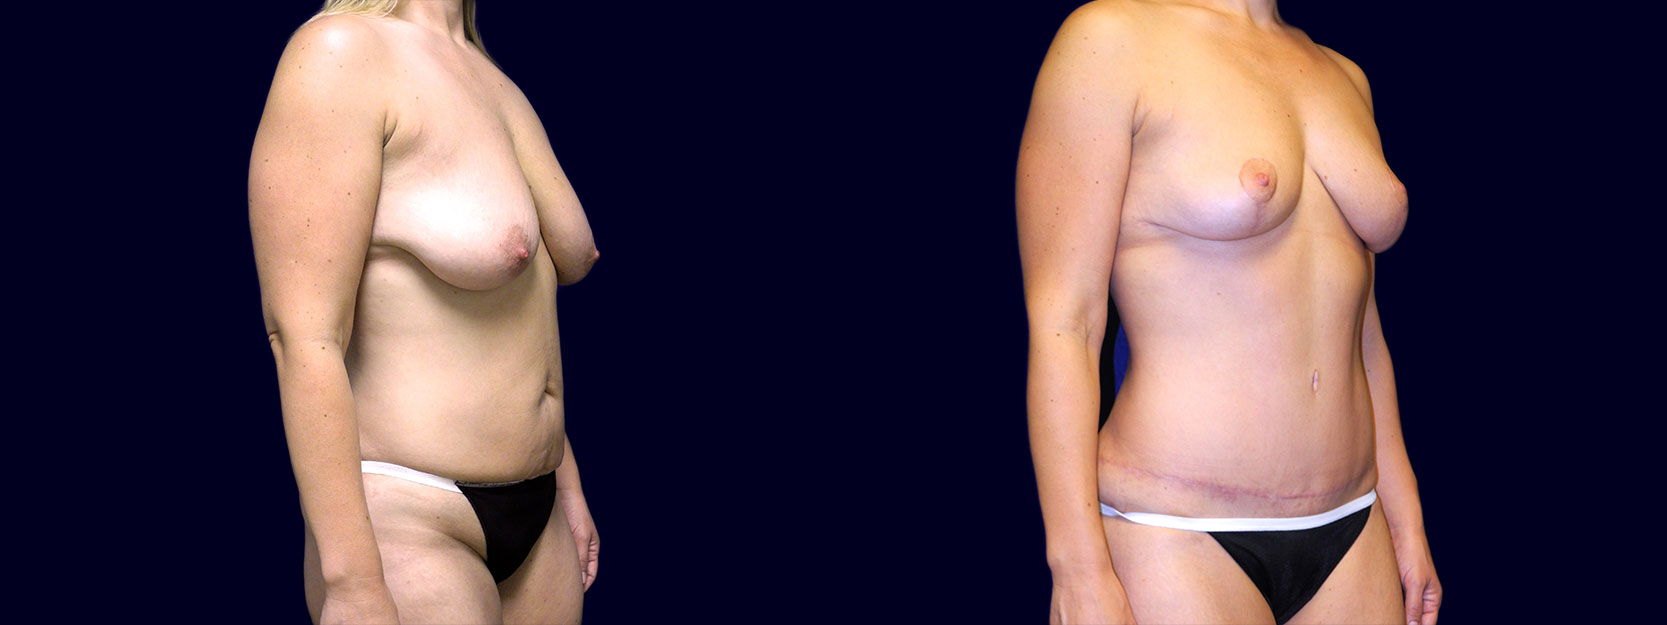 Right 3/4 View - Breast Lift & Tummy Tuck After Weight Loss